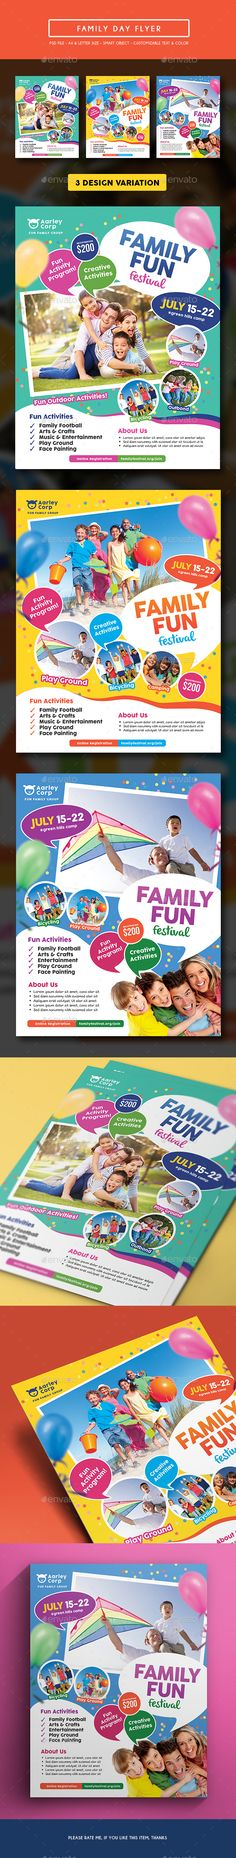 Buy Family Day Flyer by arifpoernomo on GraphicRiver. This Family Day Flyer Template, can be used for promote your Family Fun Day event, etc. Very easy to edit text, color.